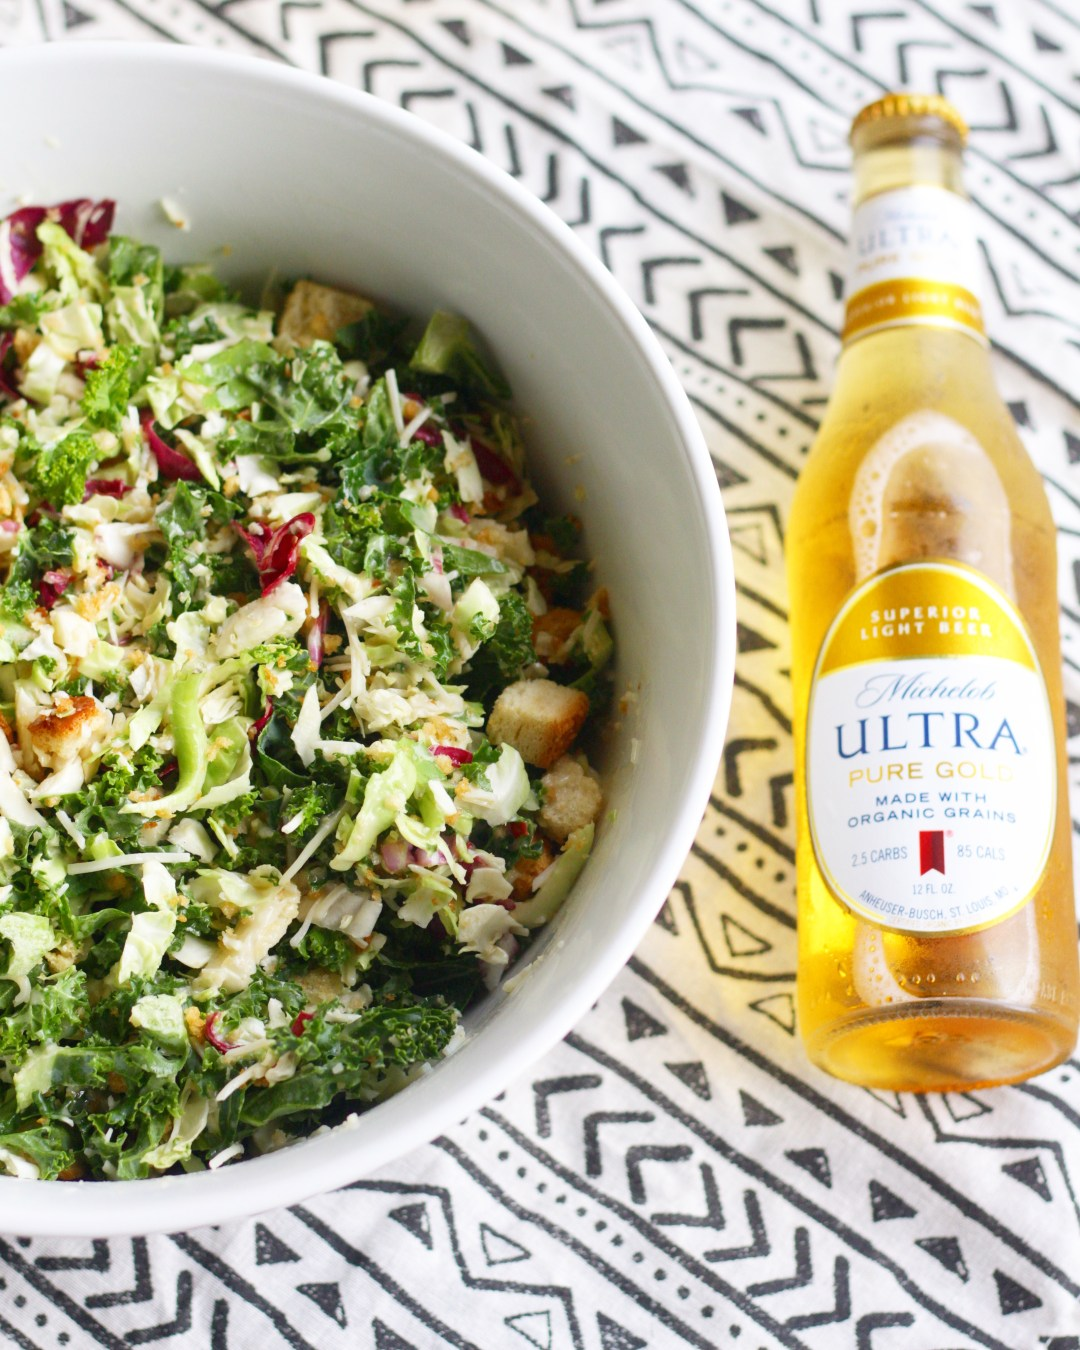 Healthy Eating & Drinking: Michelob Ultra Pure Gold - Ev's Eats